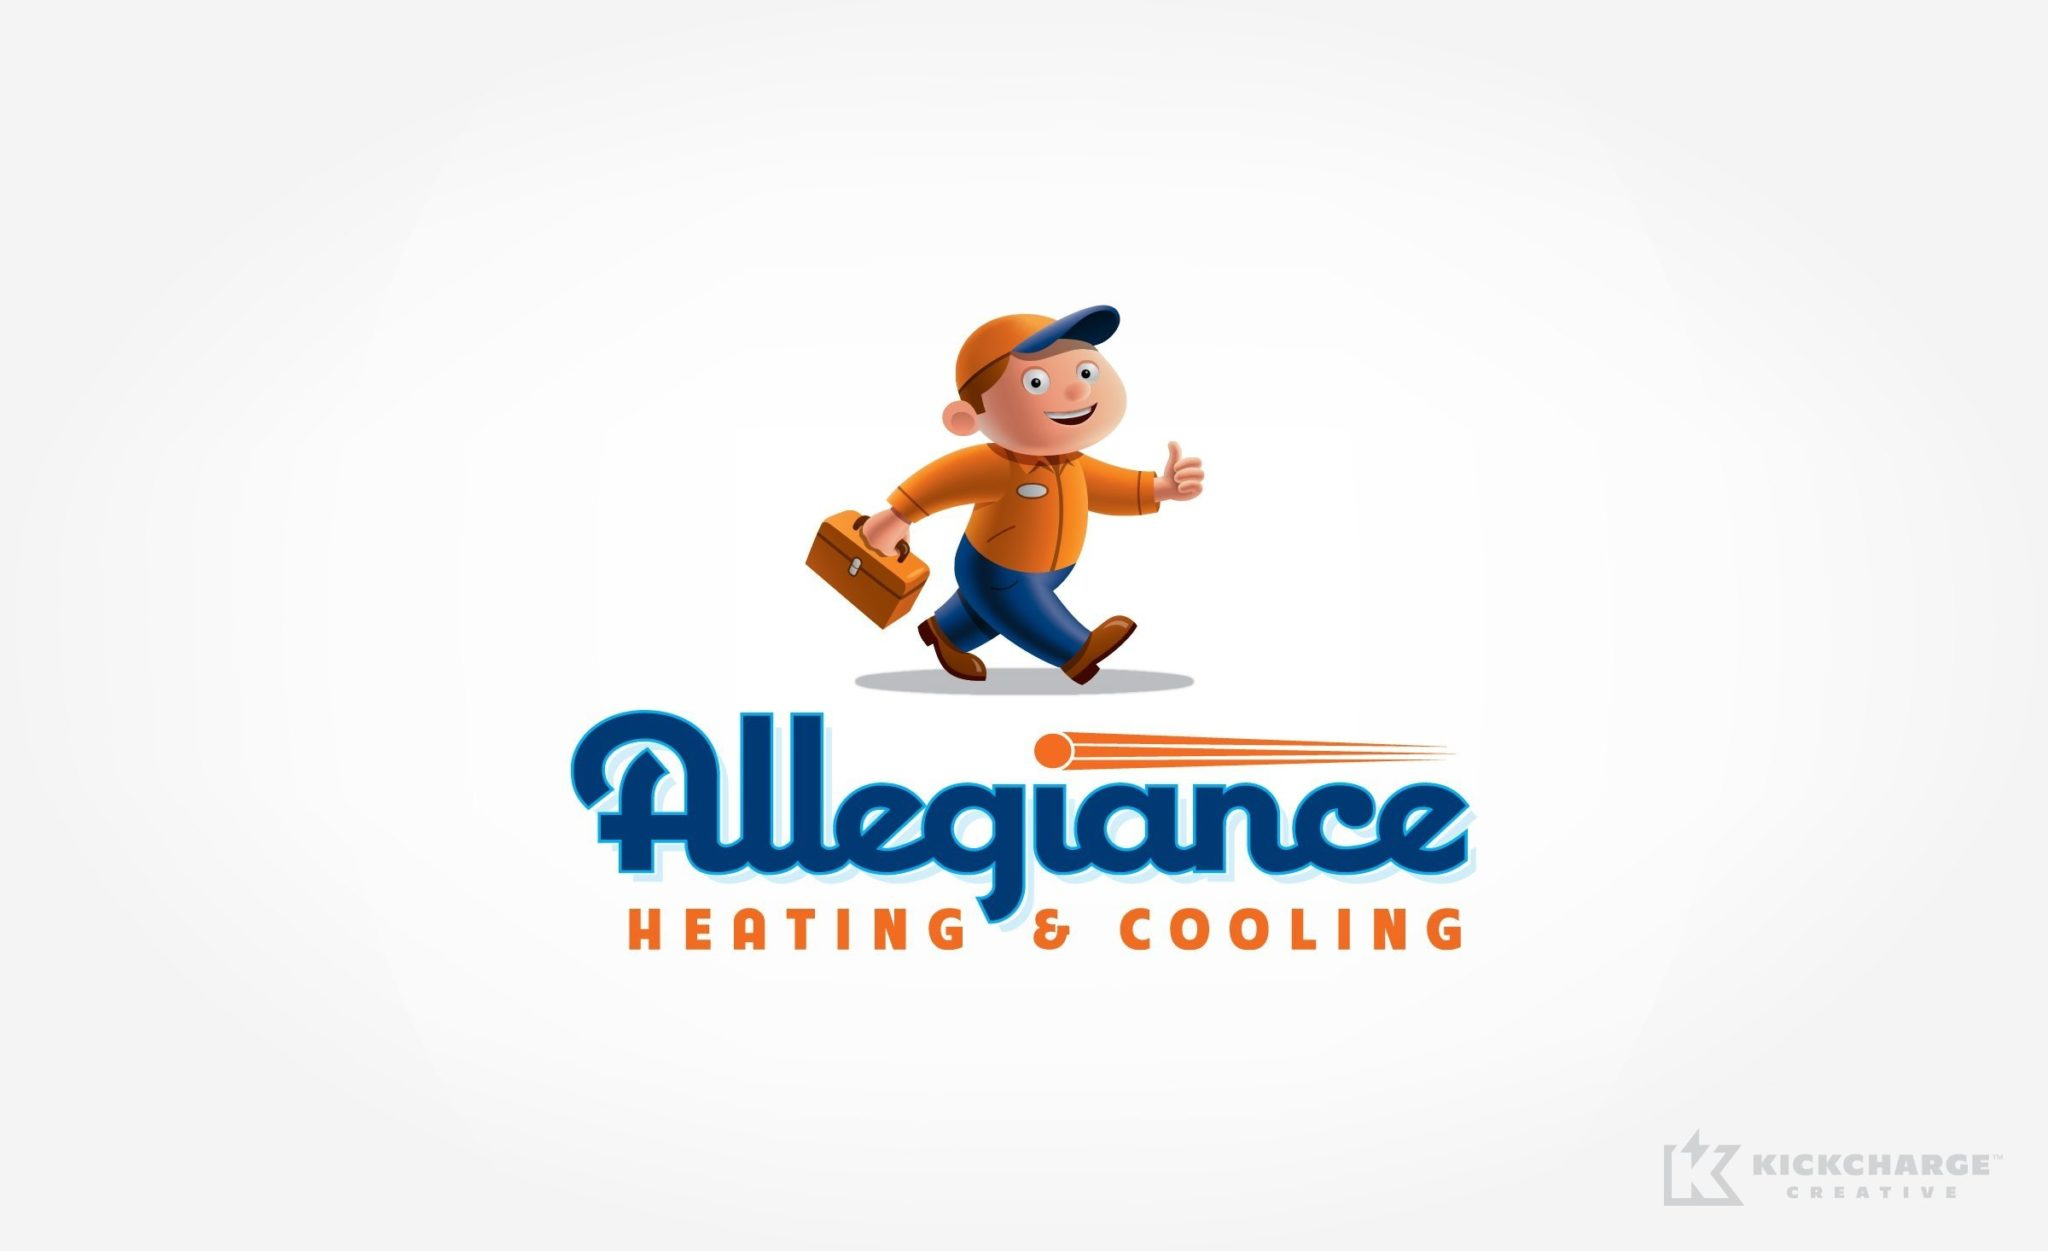 Allegiance Heating & Cooling